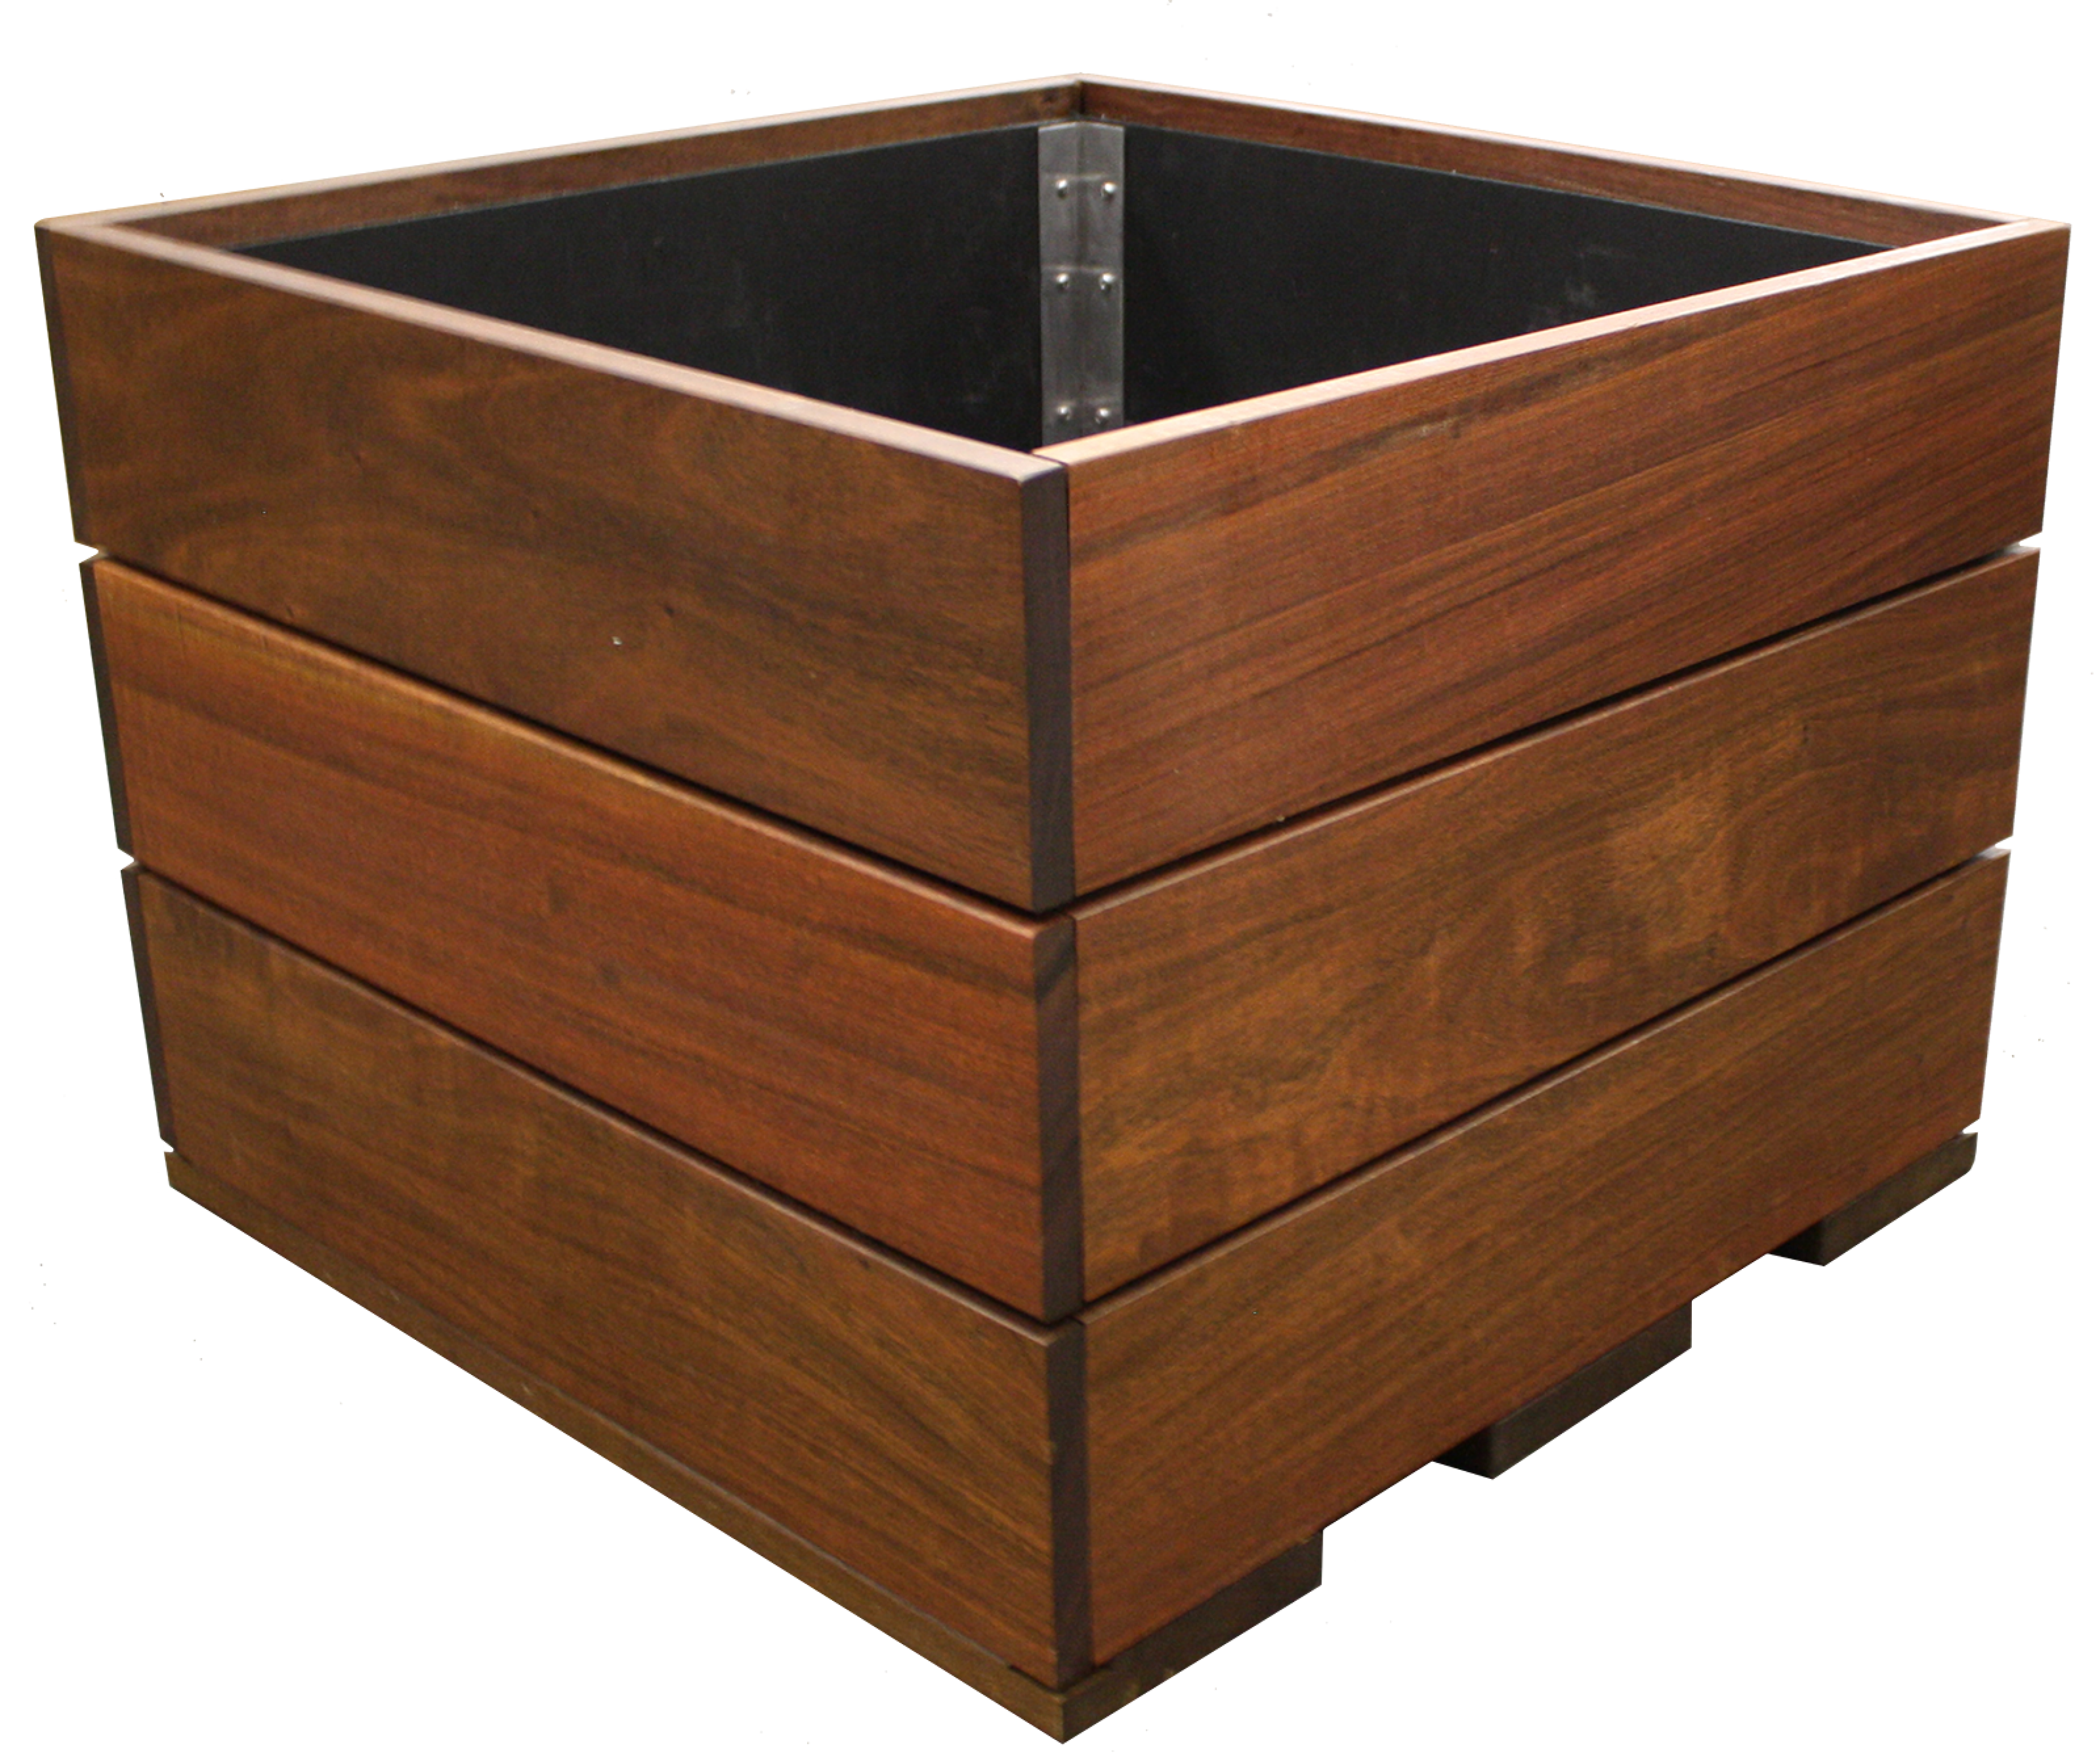 Terrific Ipe Wood Planter Box Mrp Supports Llc Pabps2019 Chair Design Images Pabps2019Com